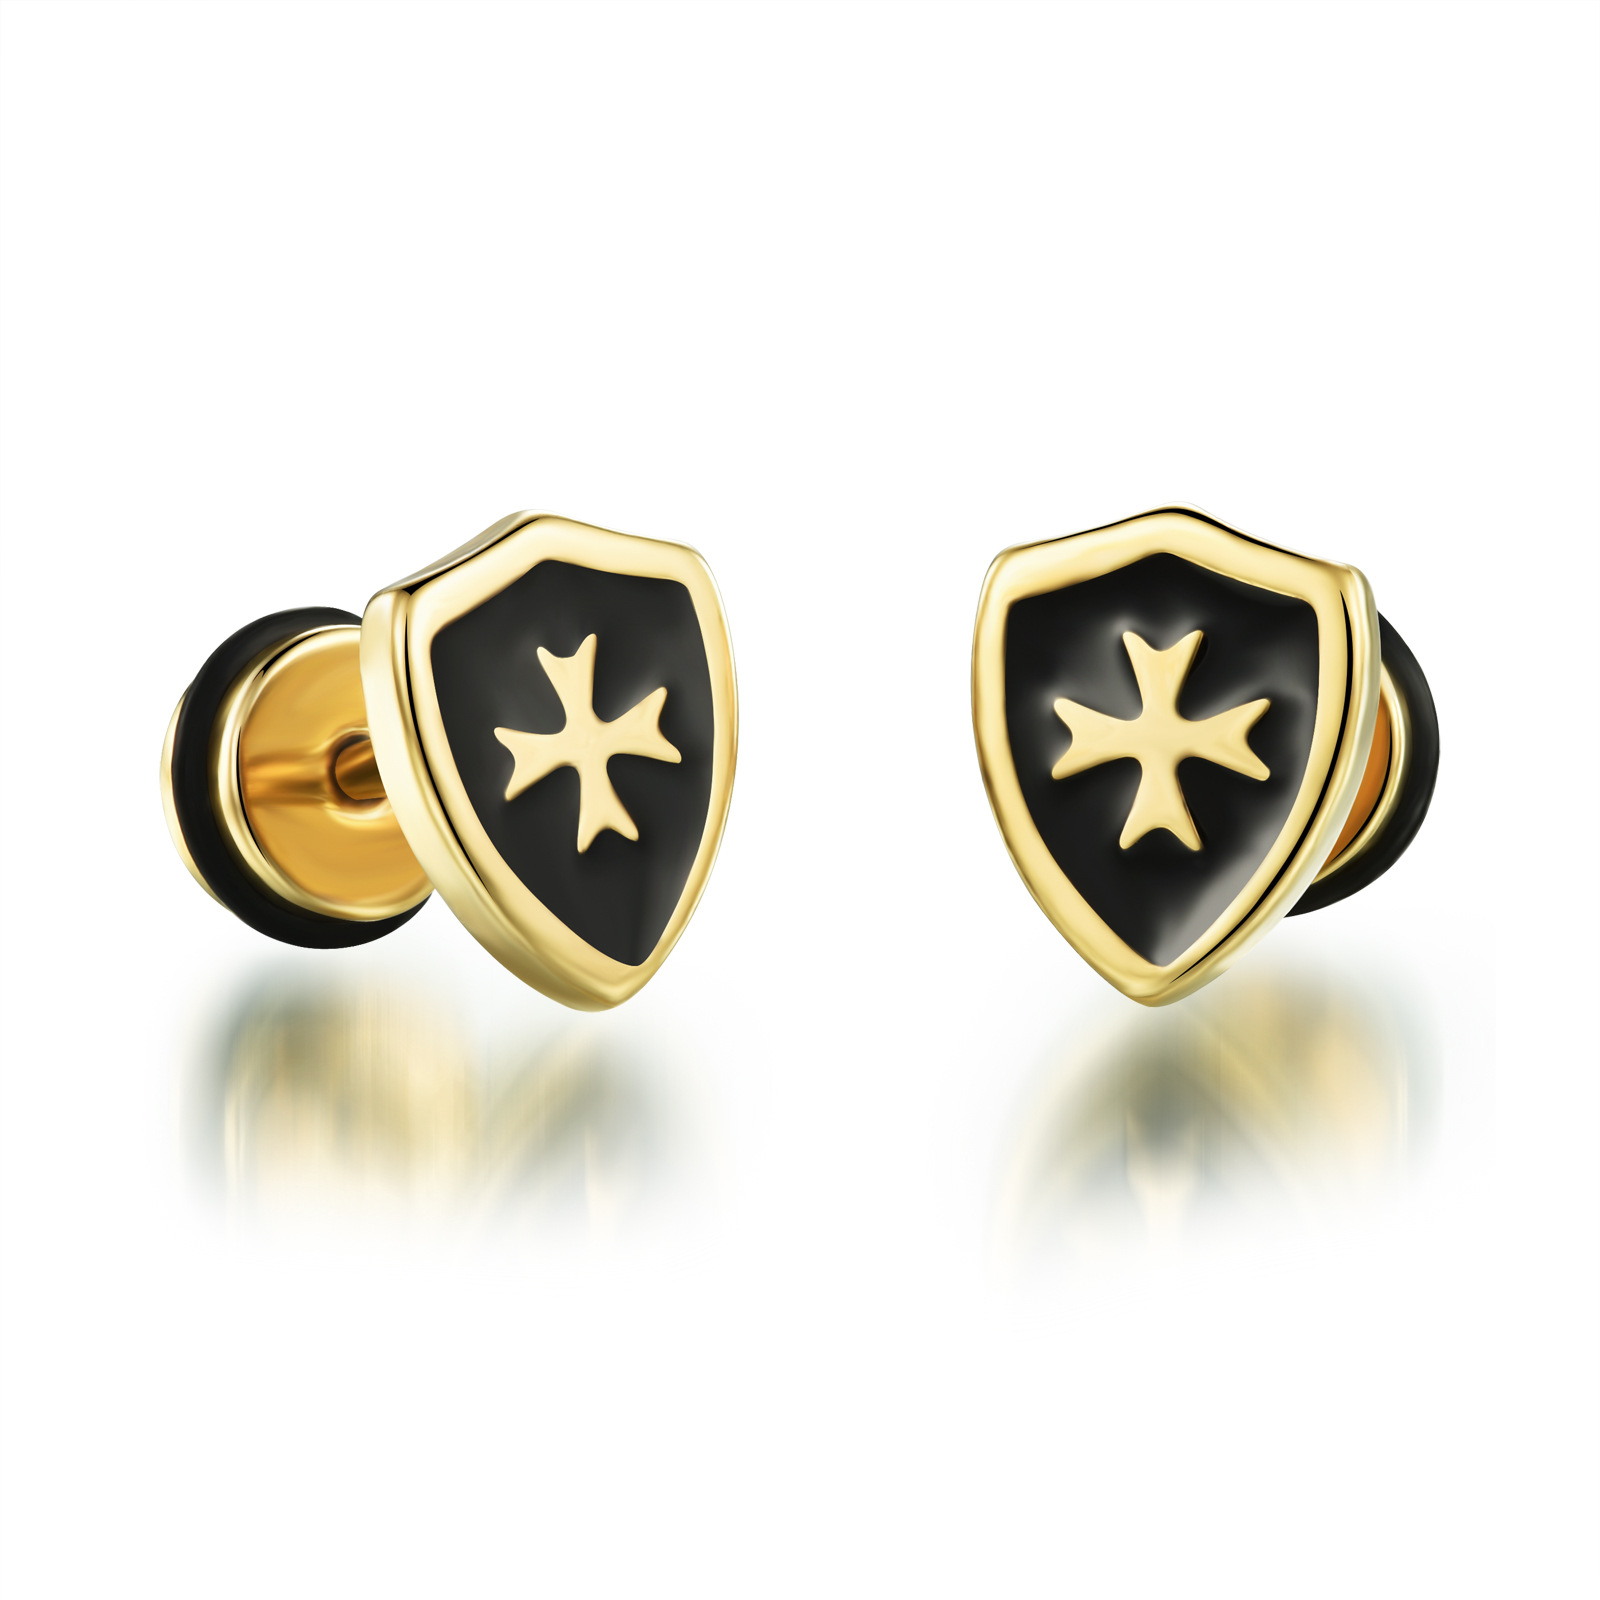 Samll Cool Man Cross Stud Earrings For Men Punk Style Gold Ptelad Stainless  Steel Earring Fashion